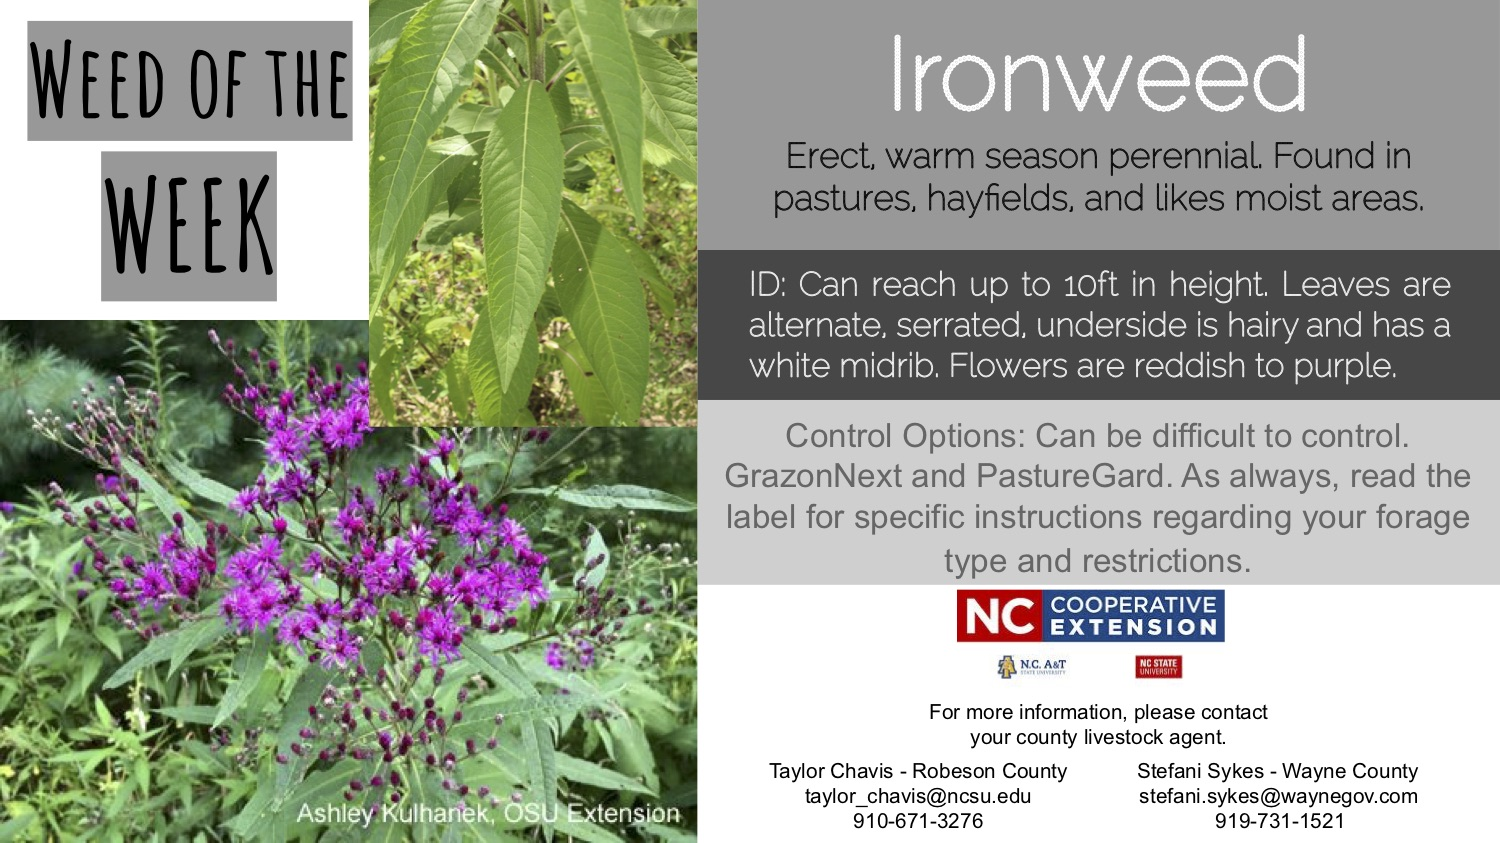 Information on the weed Ironweed